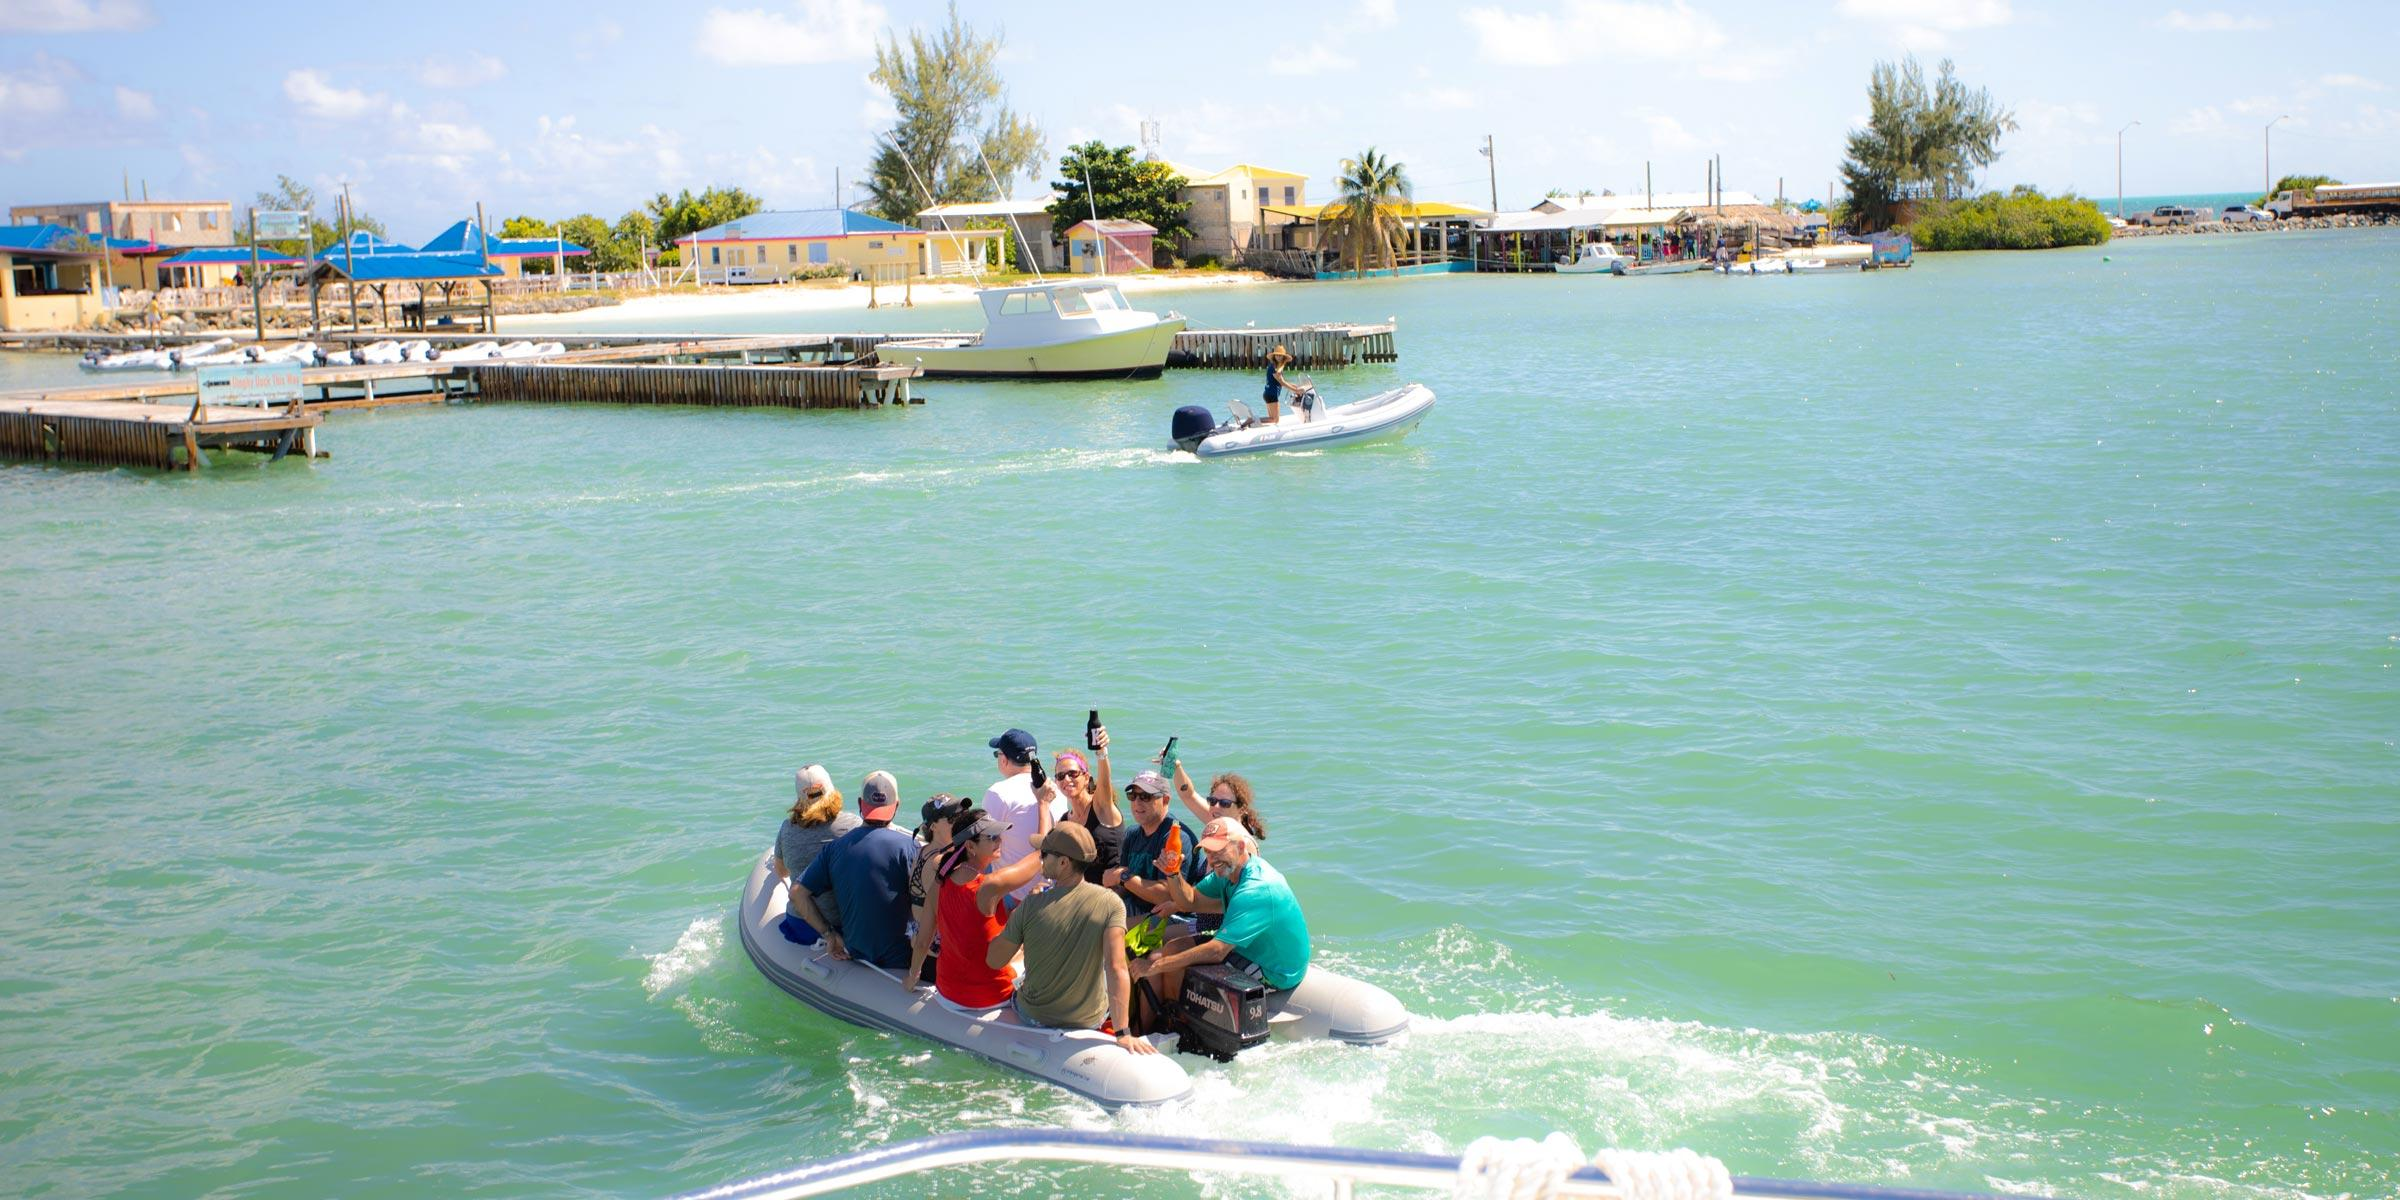 Charter guests taking the dinghy over to the island of Anegada